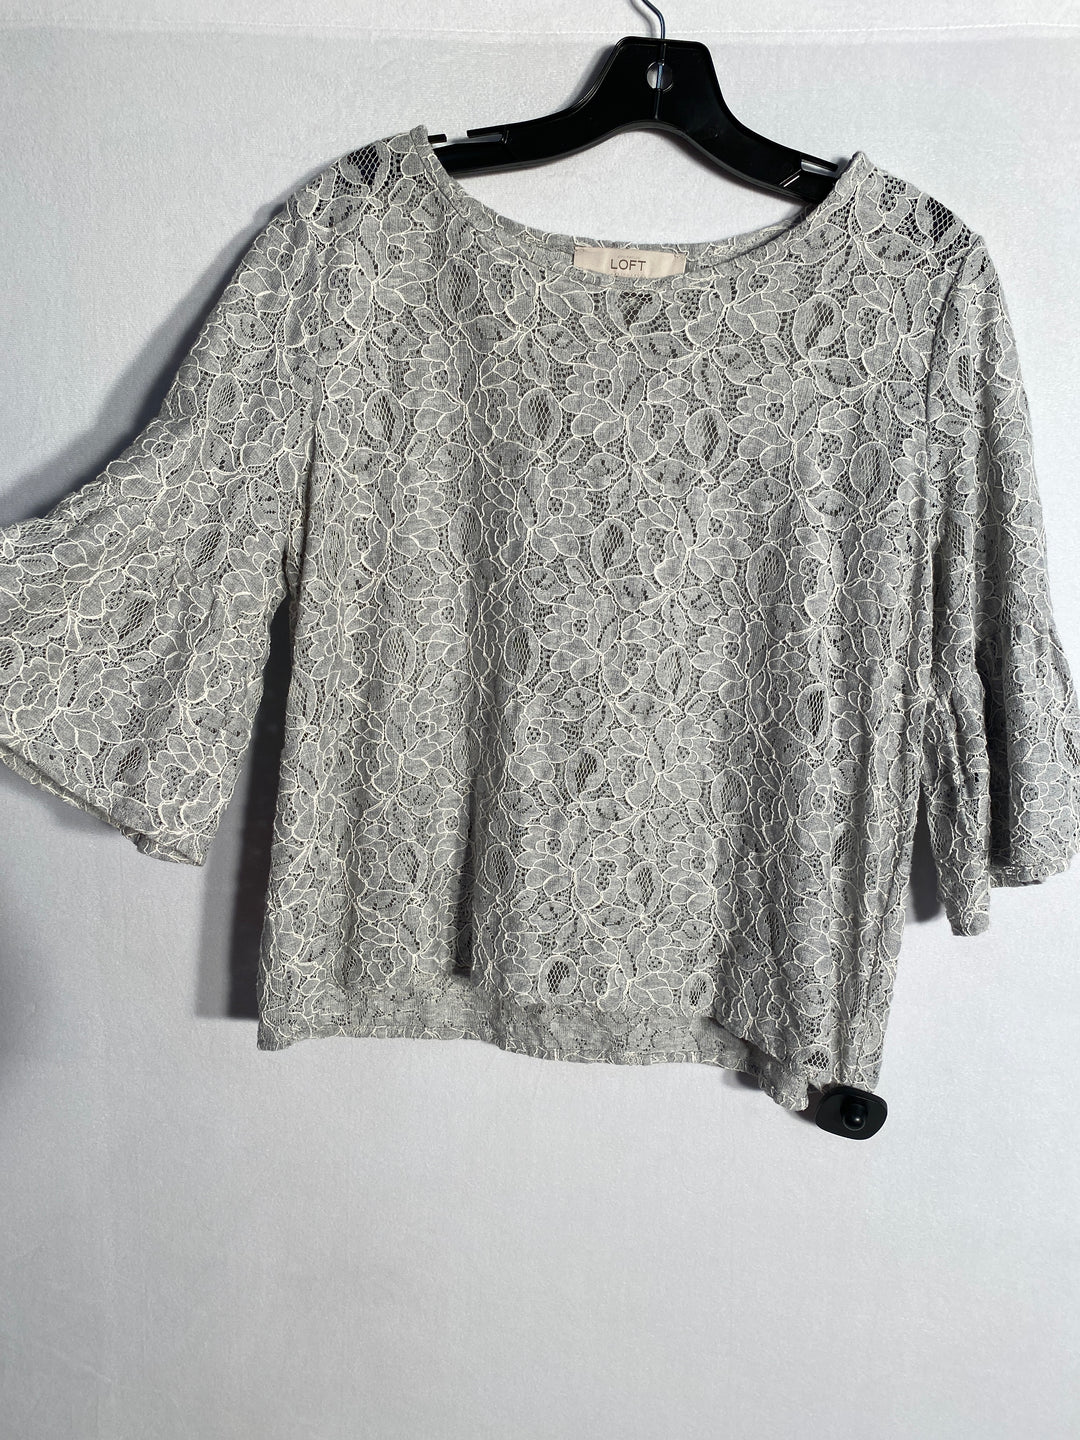 Primary Photo - BRAND: ANN TAYLOR LOFT<BR>STYLE: TOP SHORT SLEEVE<BR>COLOR: SILVER<BR>SIZE: M<BR>SKU: 313-31332-3799